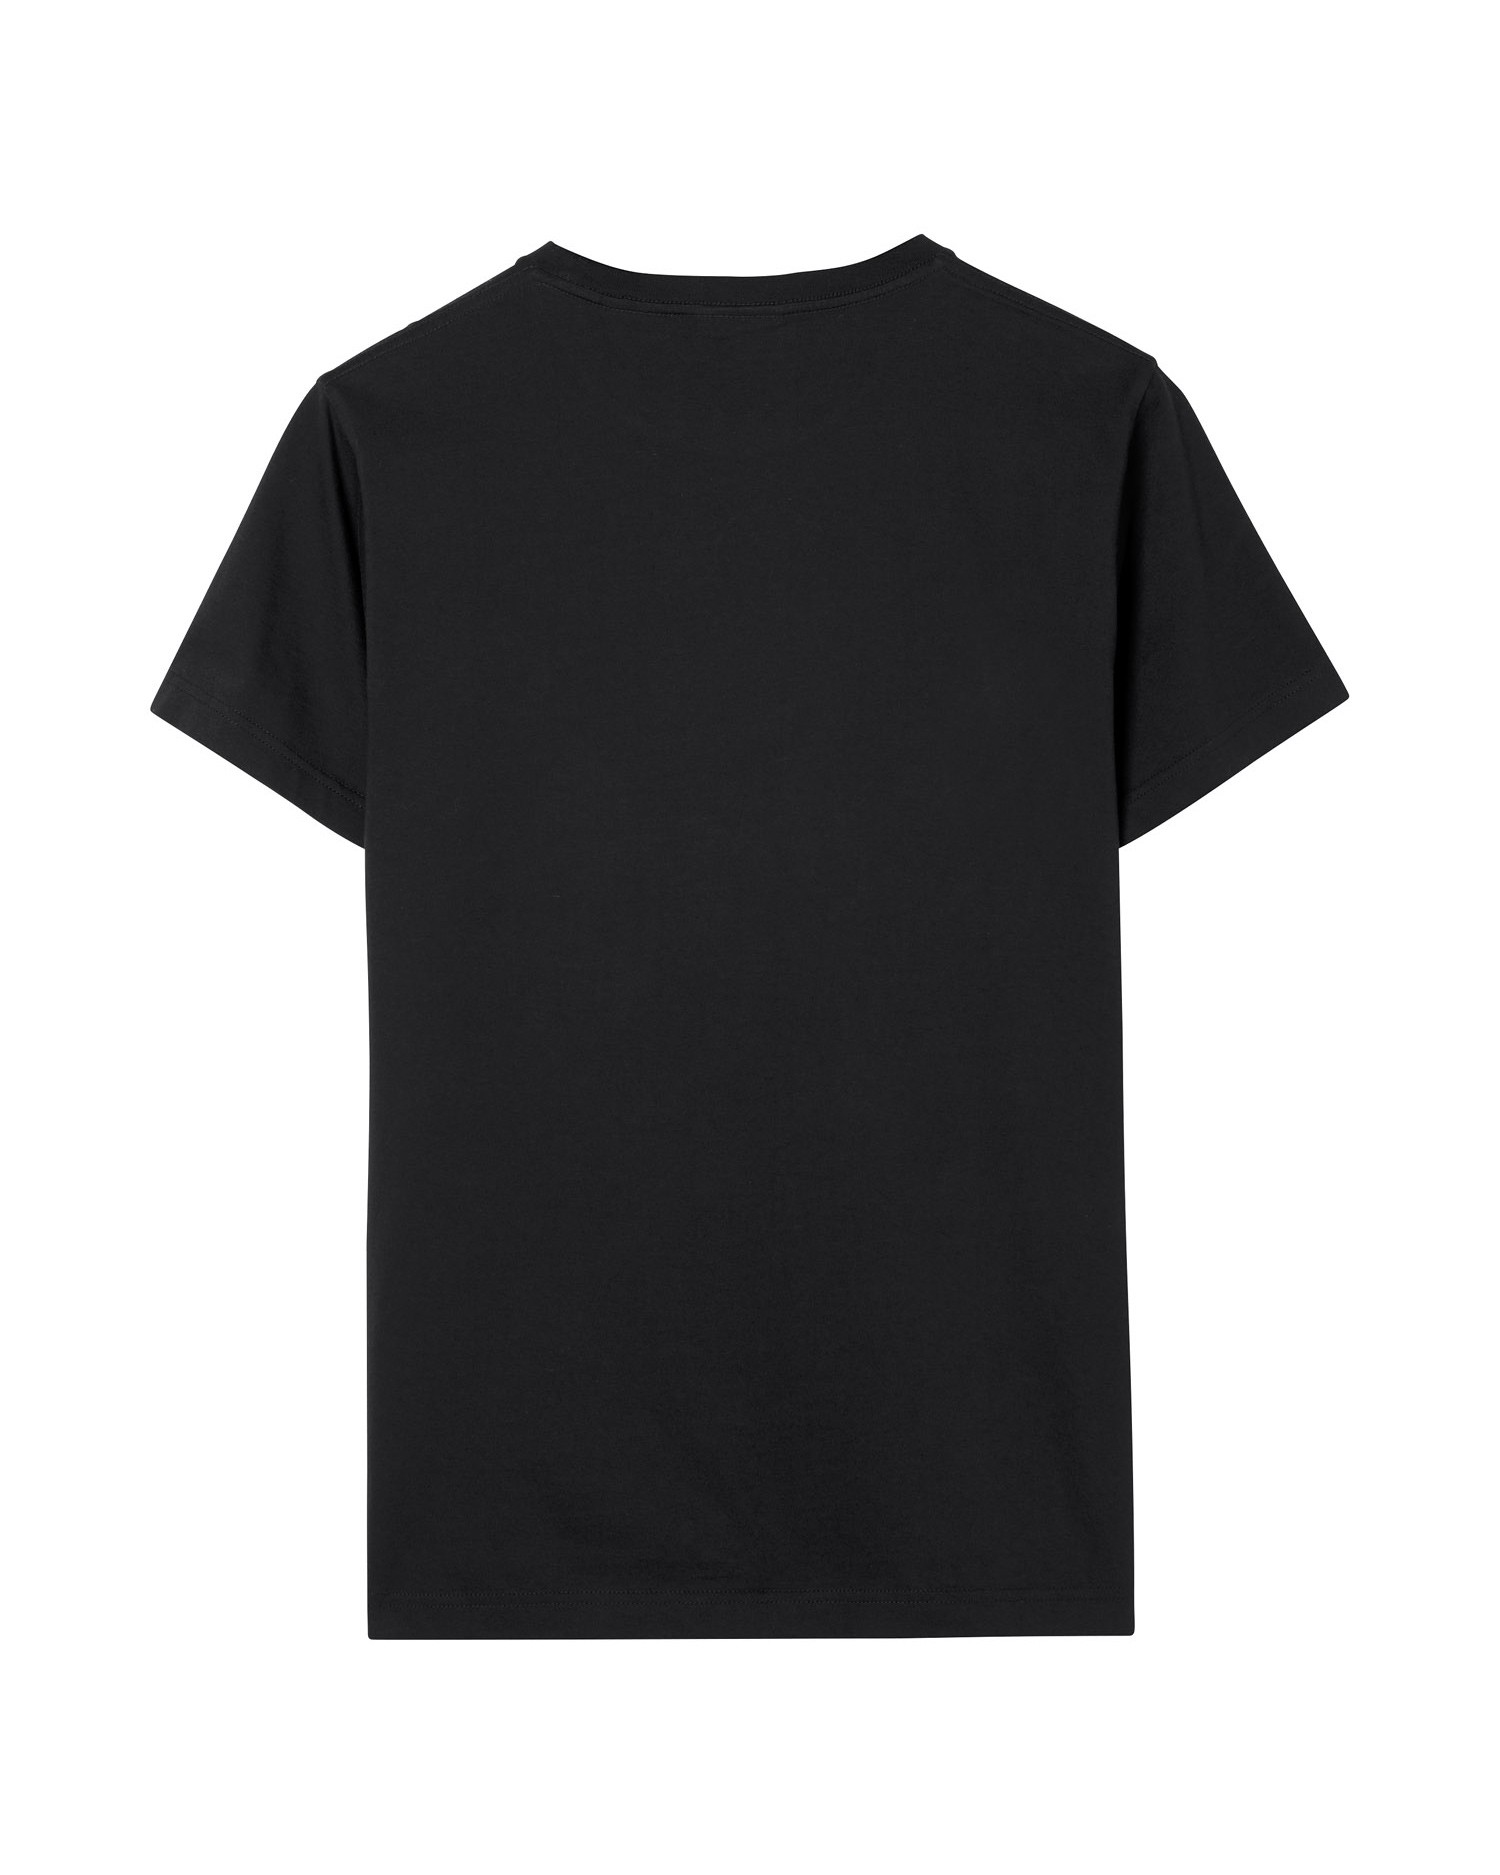 GANT Men's The Original Short Sleeve T-Shirt - 234100